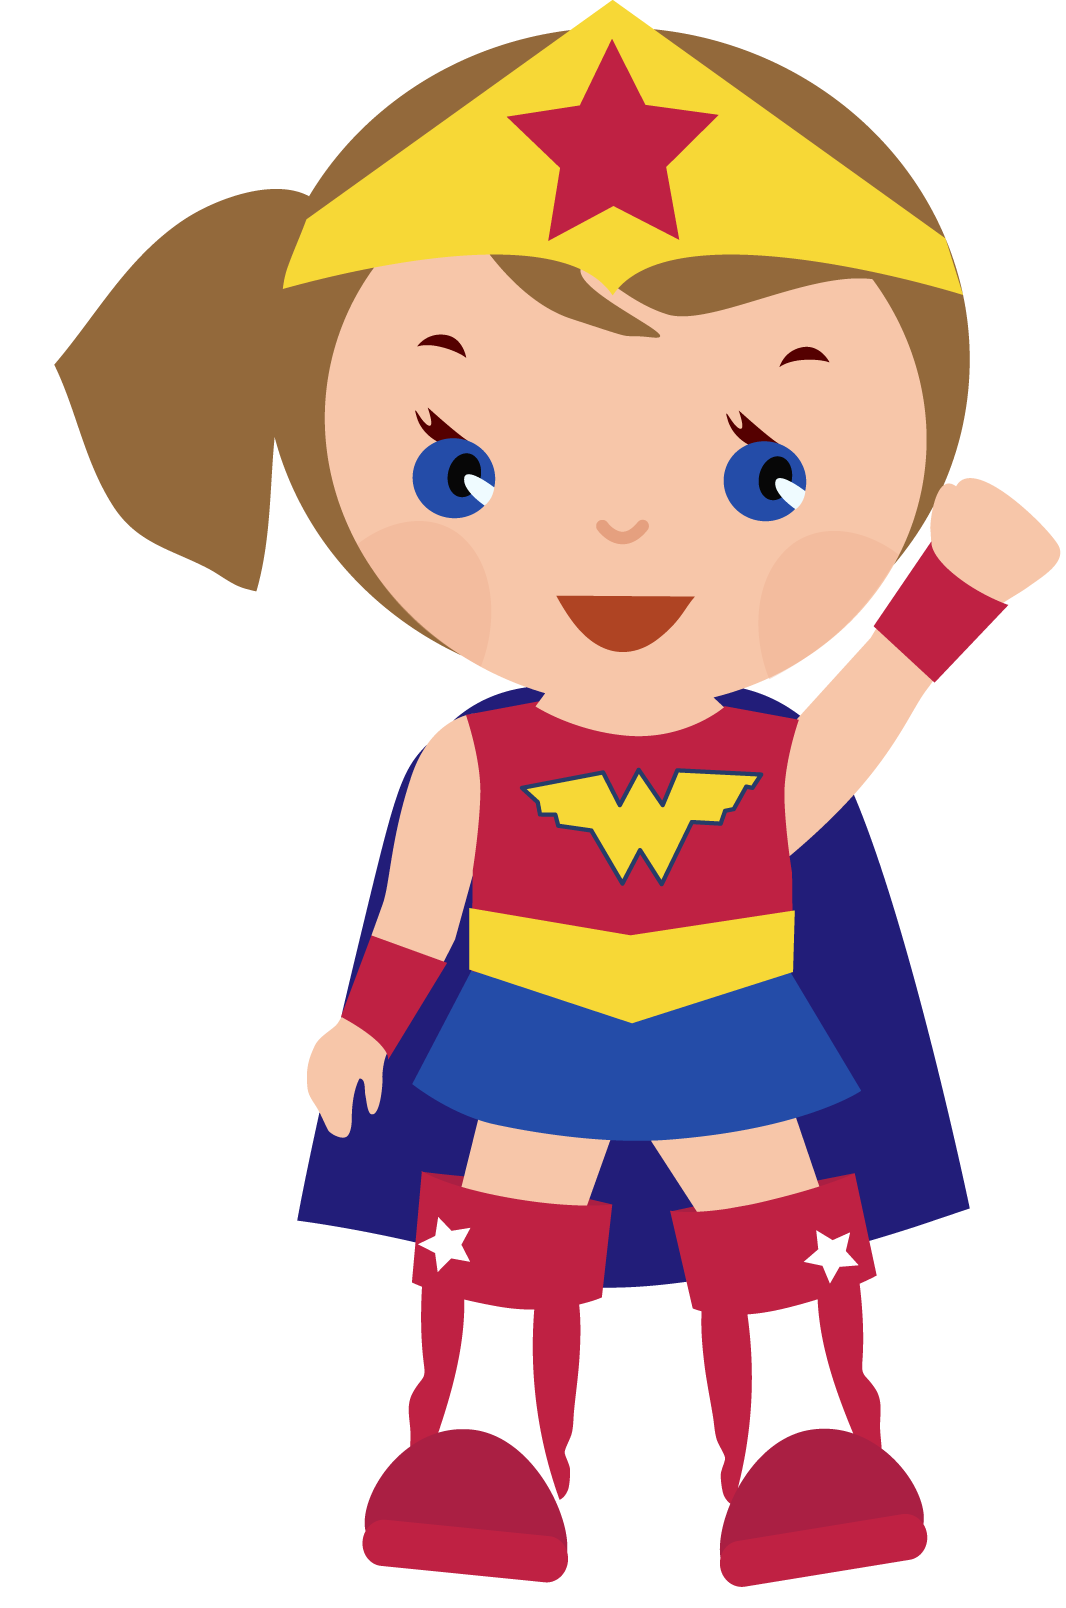 Printable free fontsclipart freebies. Pajamas clipart superhero